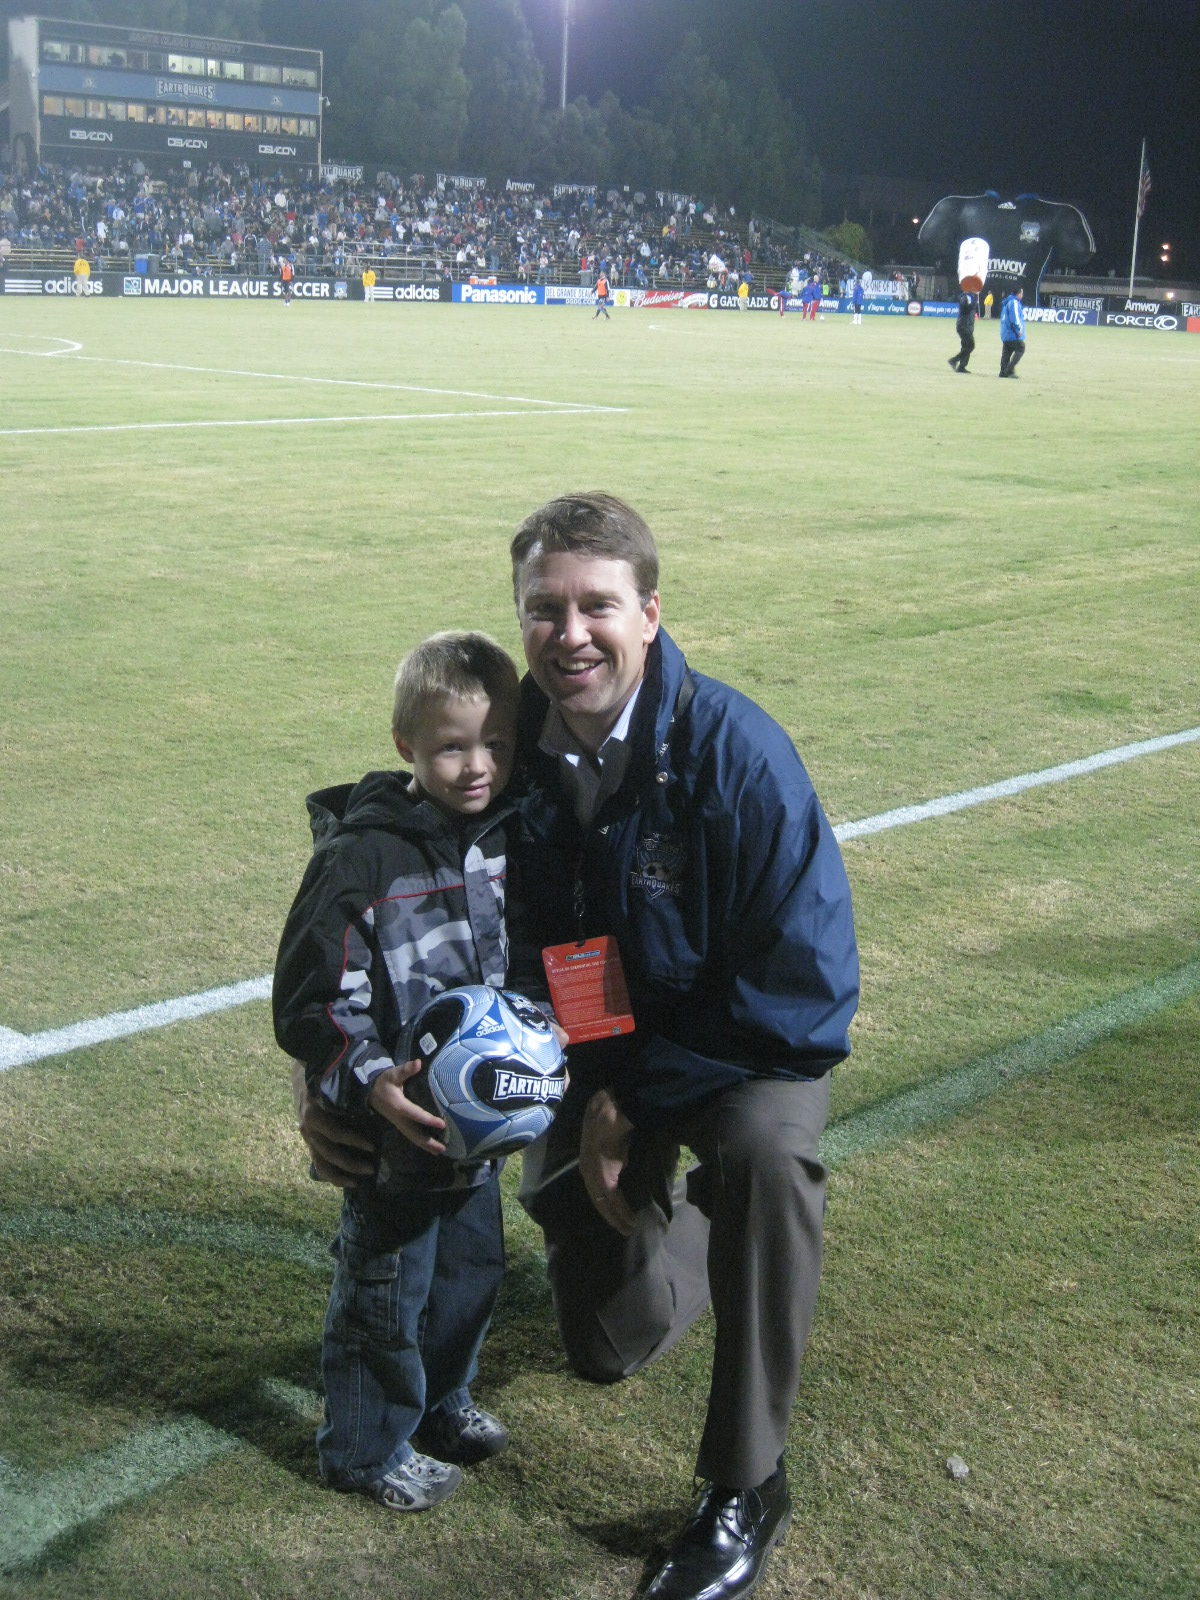 son holding soccer ball next to kneeling dad on the field